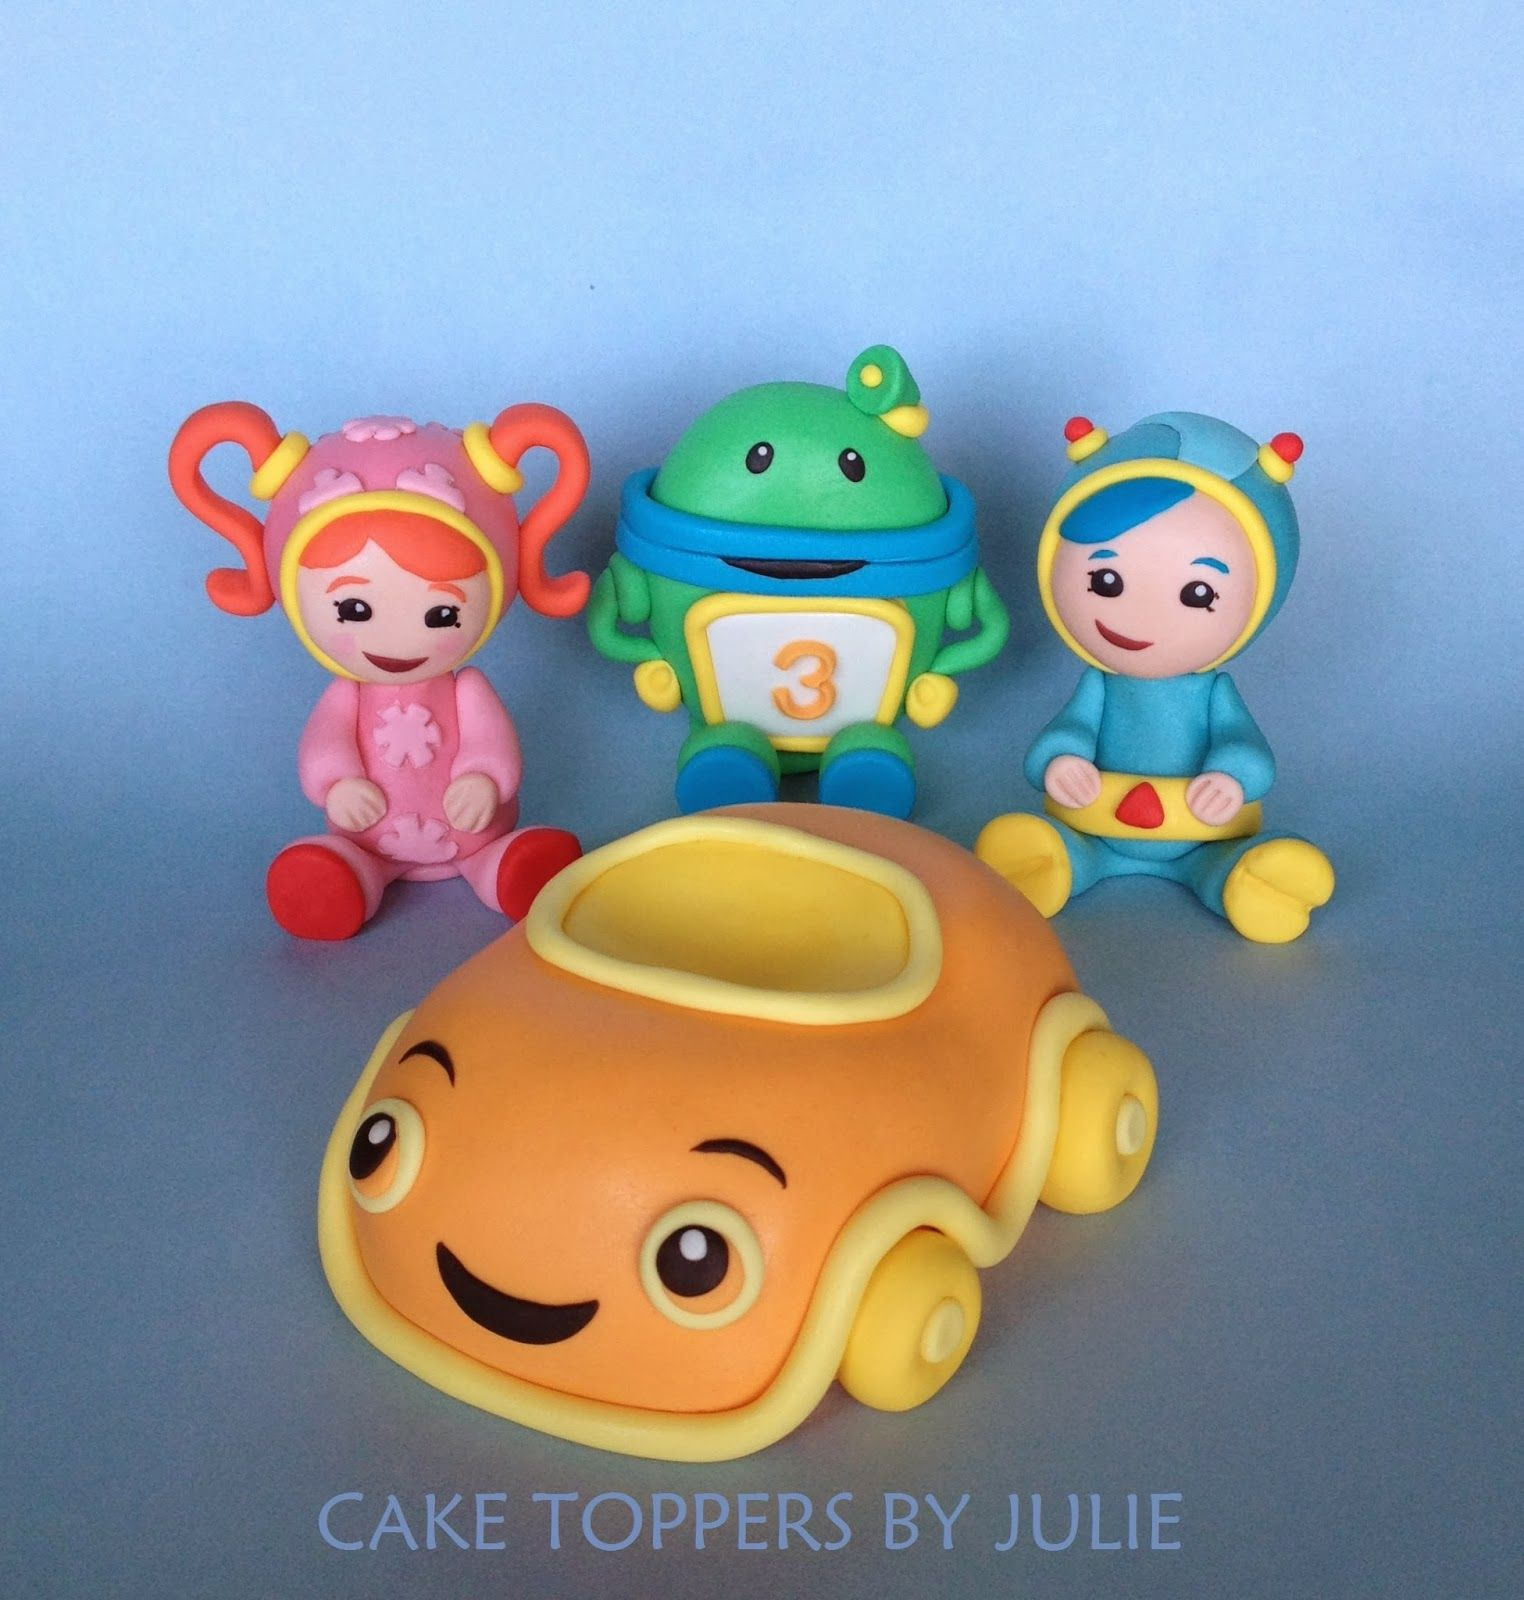 Custom Cakes By Julie Team Umizoomi Cake Toppers